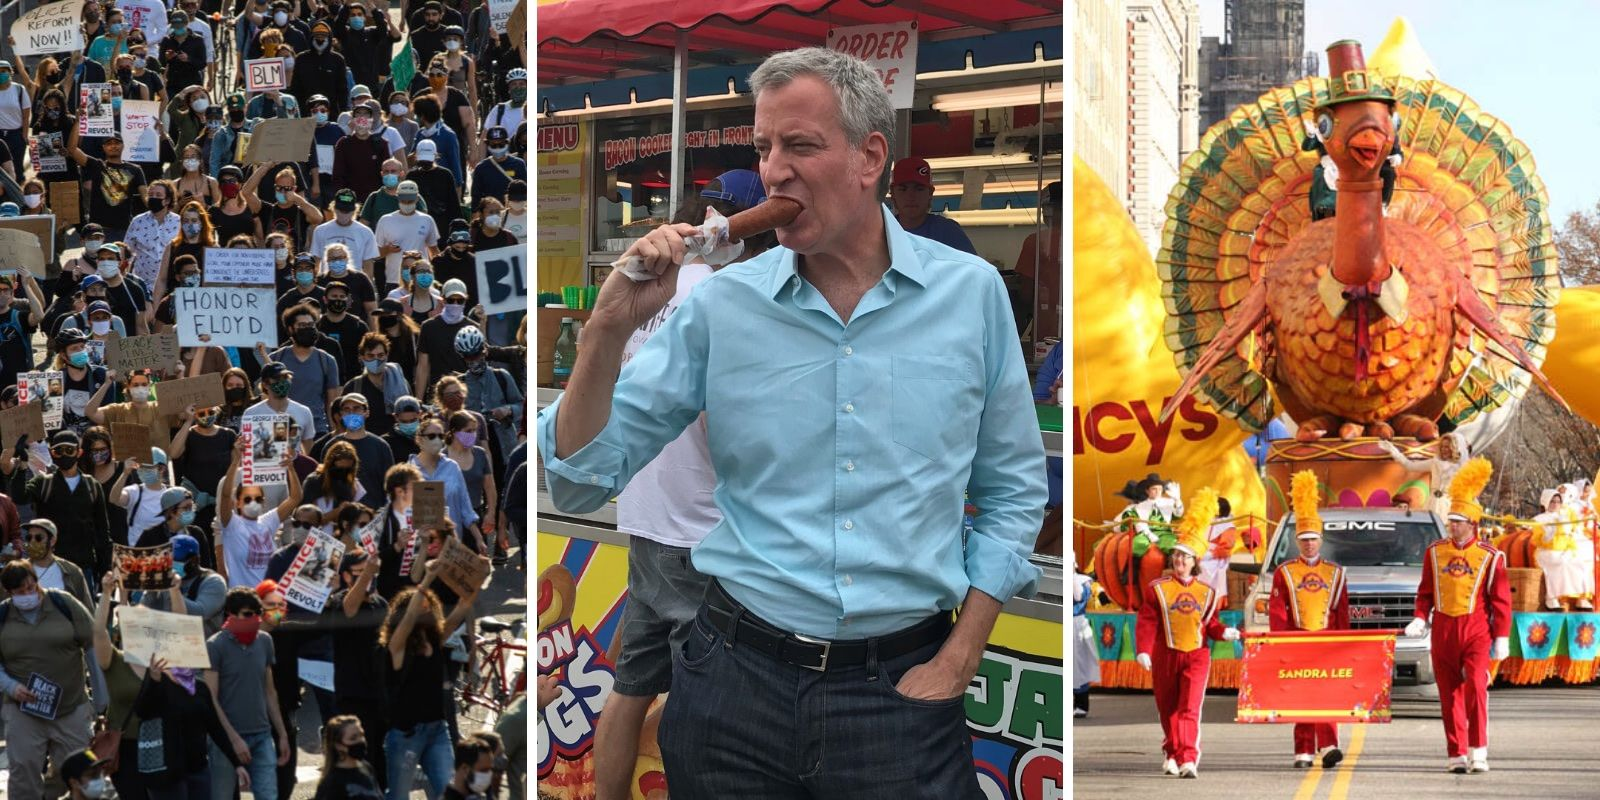 De Blasio announces 'reinvented' Macy's Thanksgiving Day Parade—mass protest can go on as usual